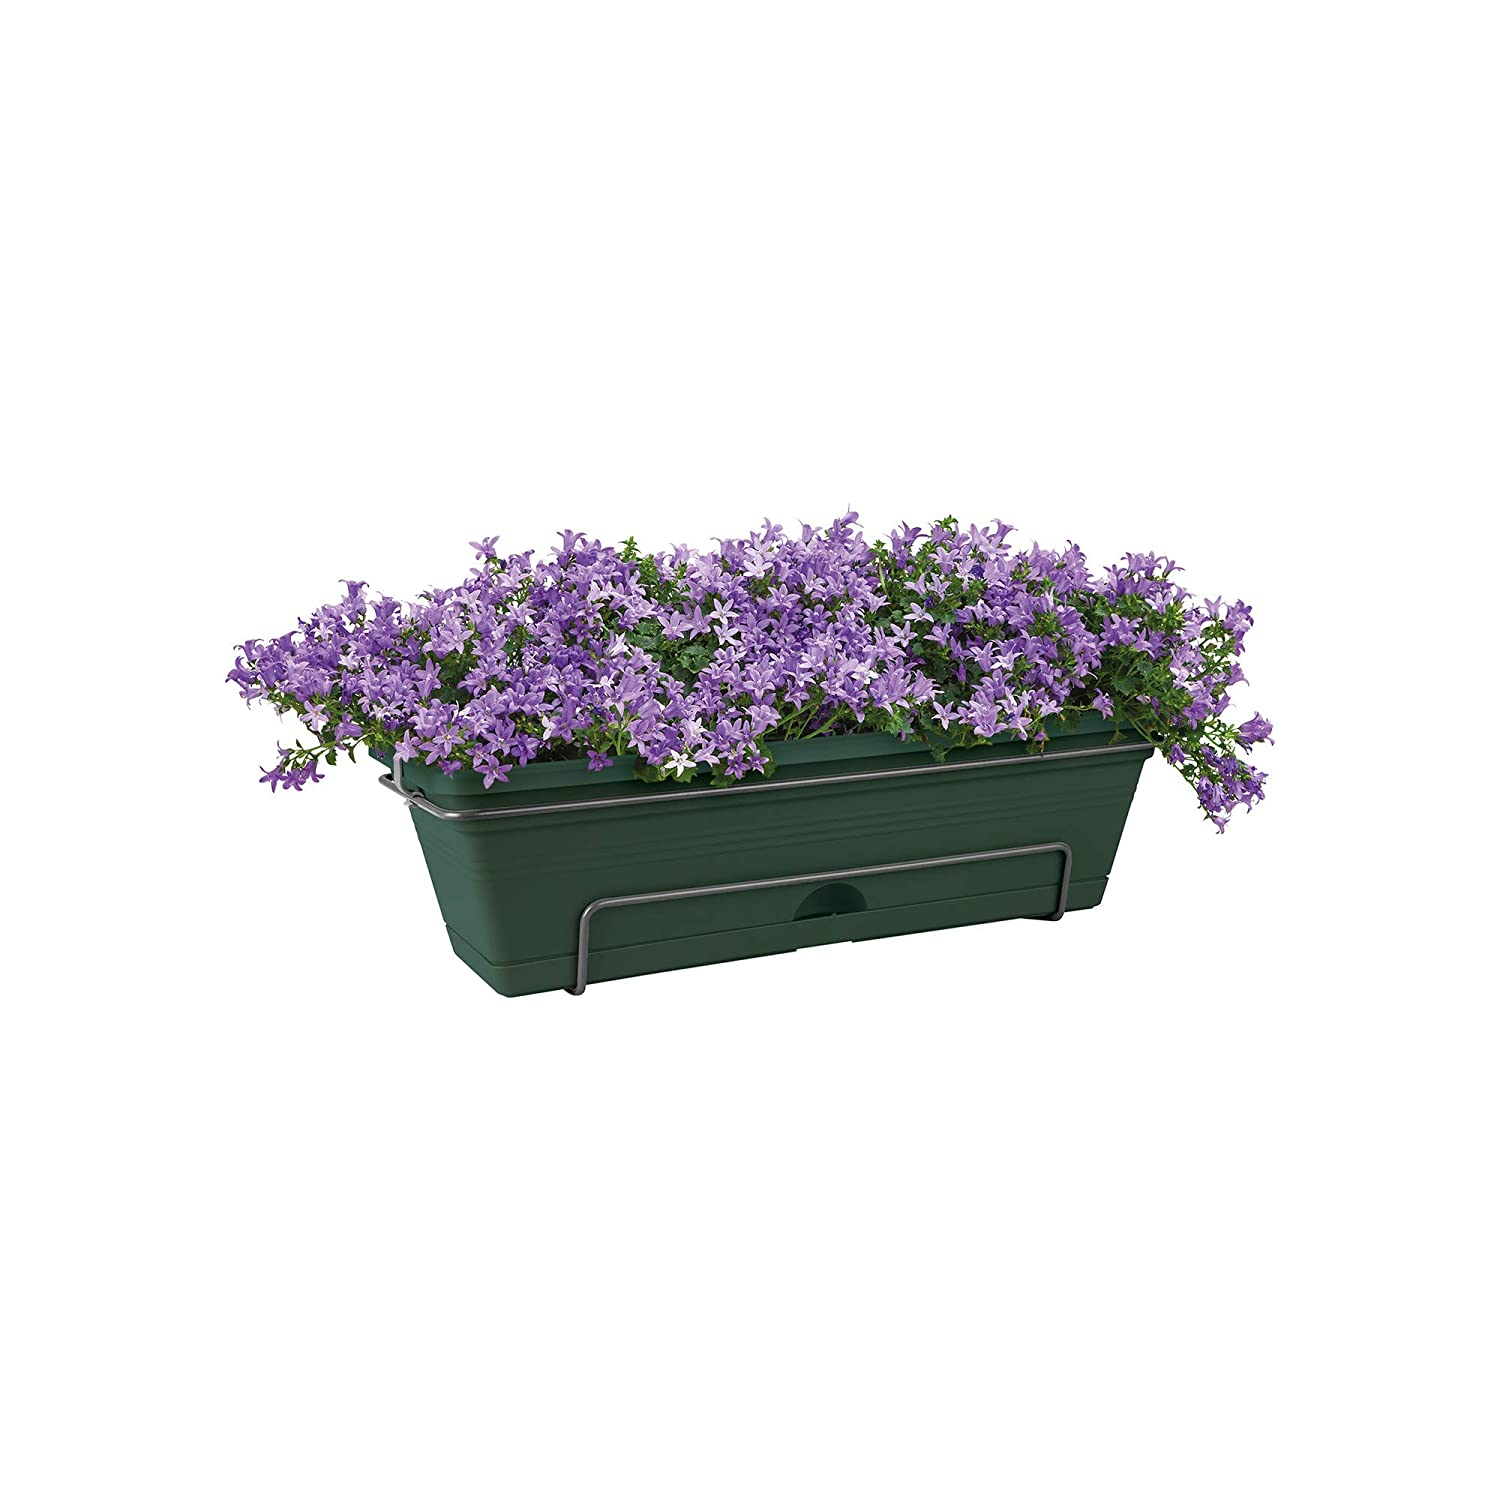 Elho Green Basics Trough Allin1 Jardinera, 7.4 litros, Blanco(Cotton), 47,3x25,7x16,7 cm